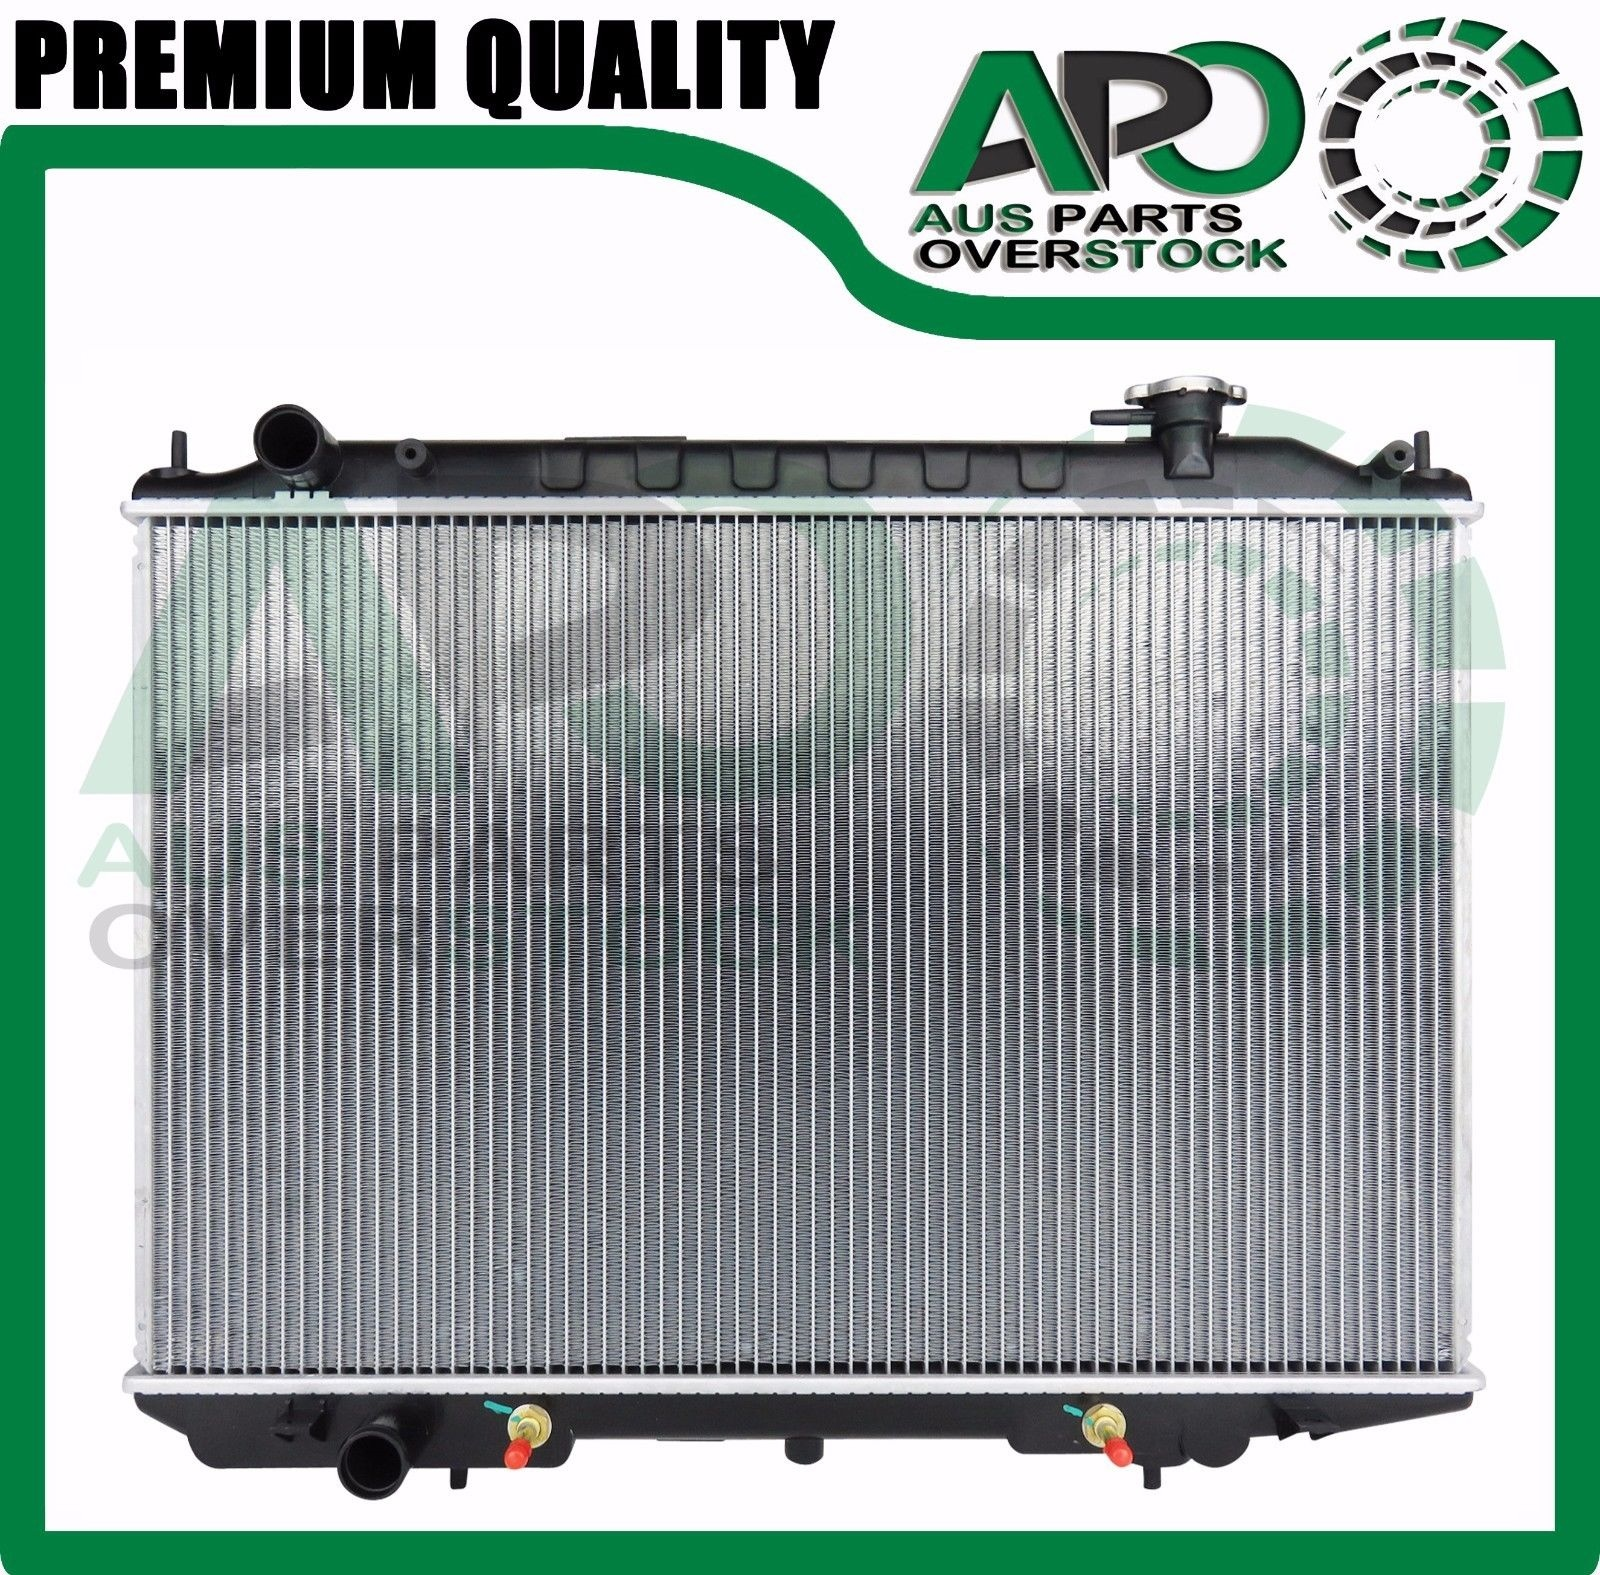 hight resolution of details about premium quality radiator for nissan navara d22 2 5l yd25 turbo diesel 2007 on